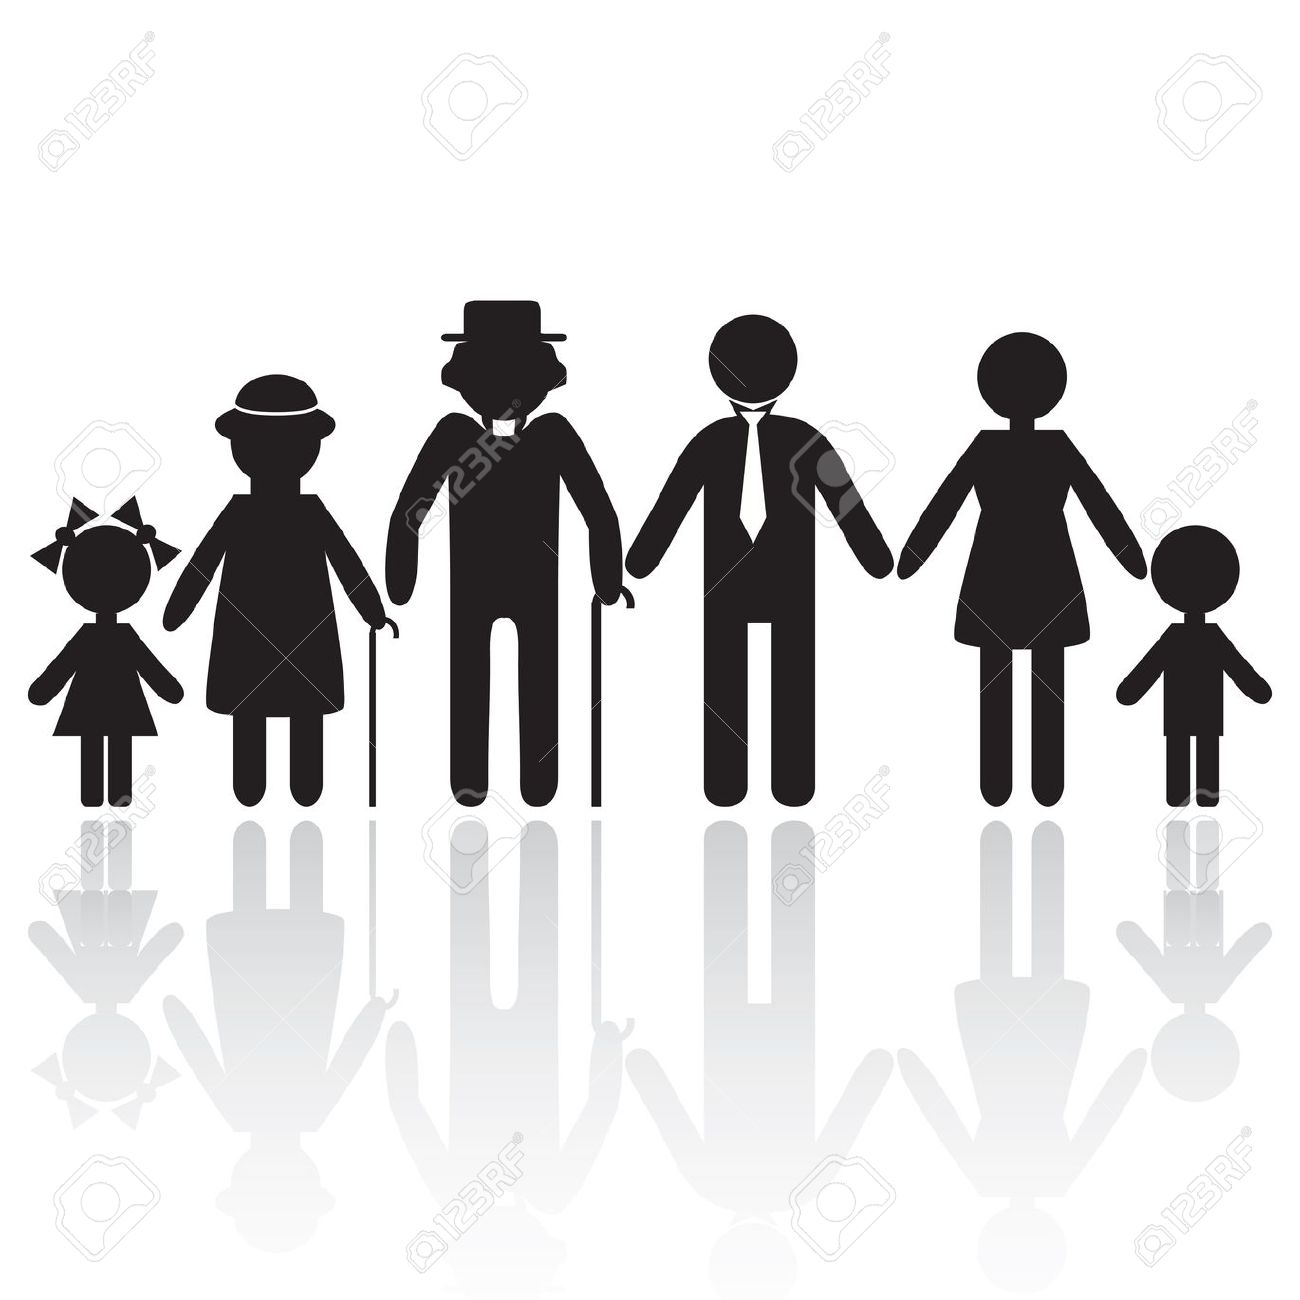 http://previews.123rf.com/images/hermione13/hermione131103/hermione13110300048/9099843-Silhouettes-of-woman-man-kid-grandfather-grandmother-family-Element-for-design-icon-Stock-Vector.jpg